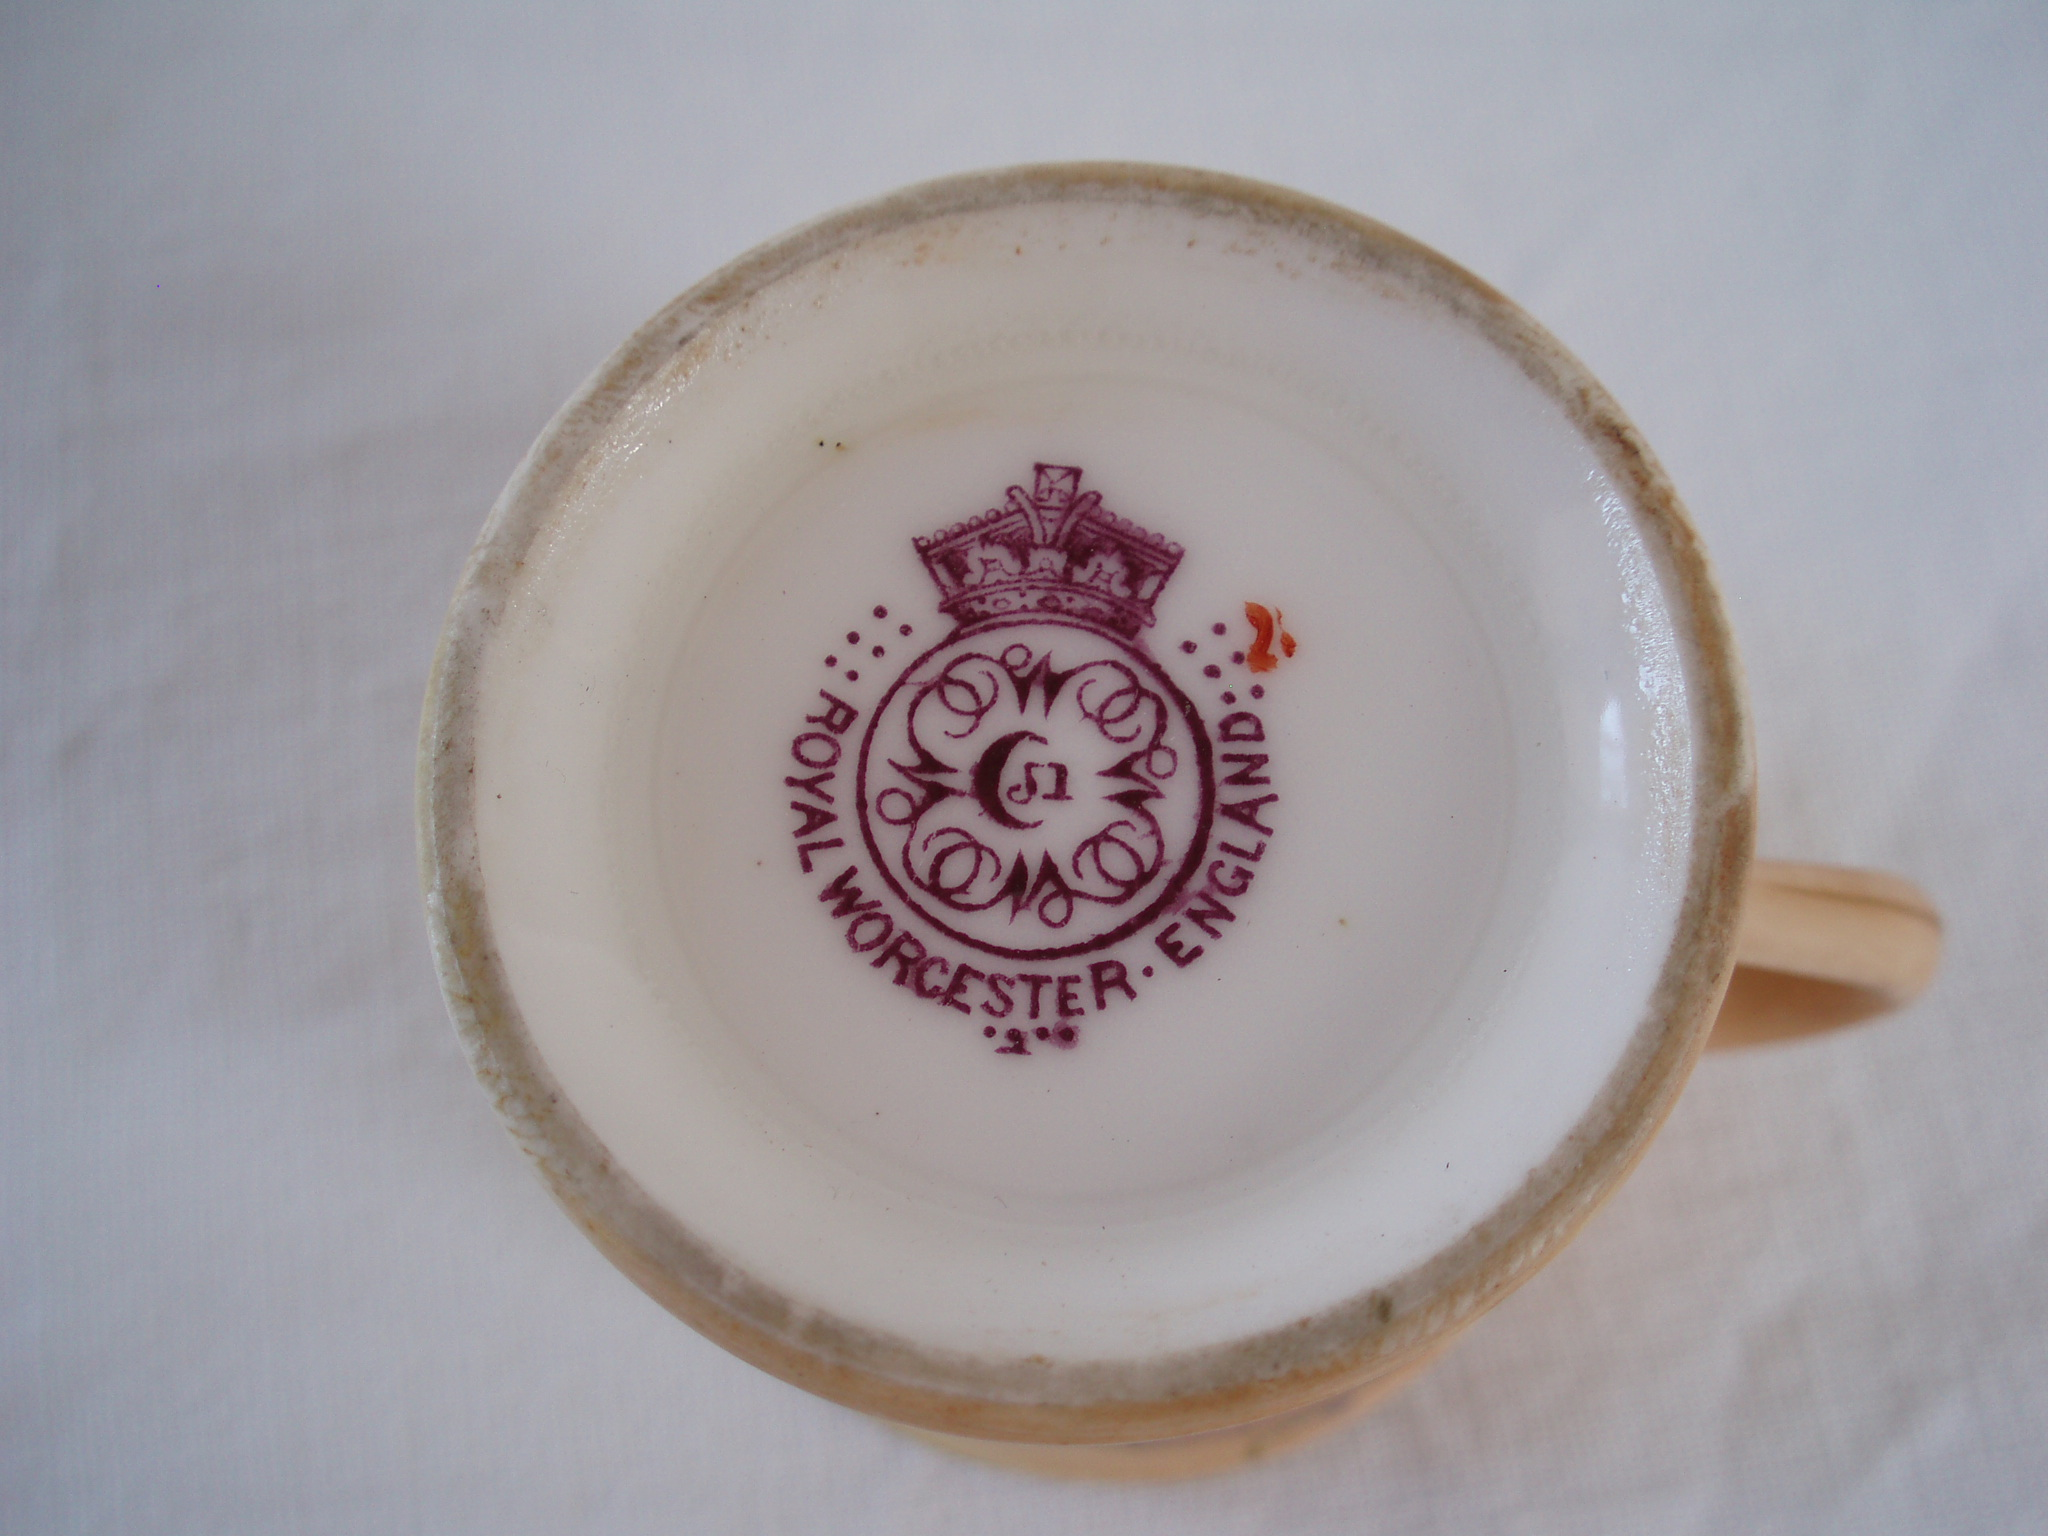 Dating Royal Worcester 1867 to 1927